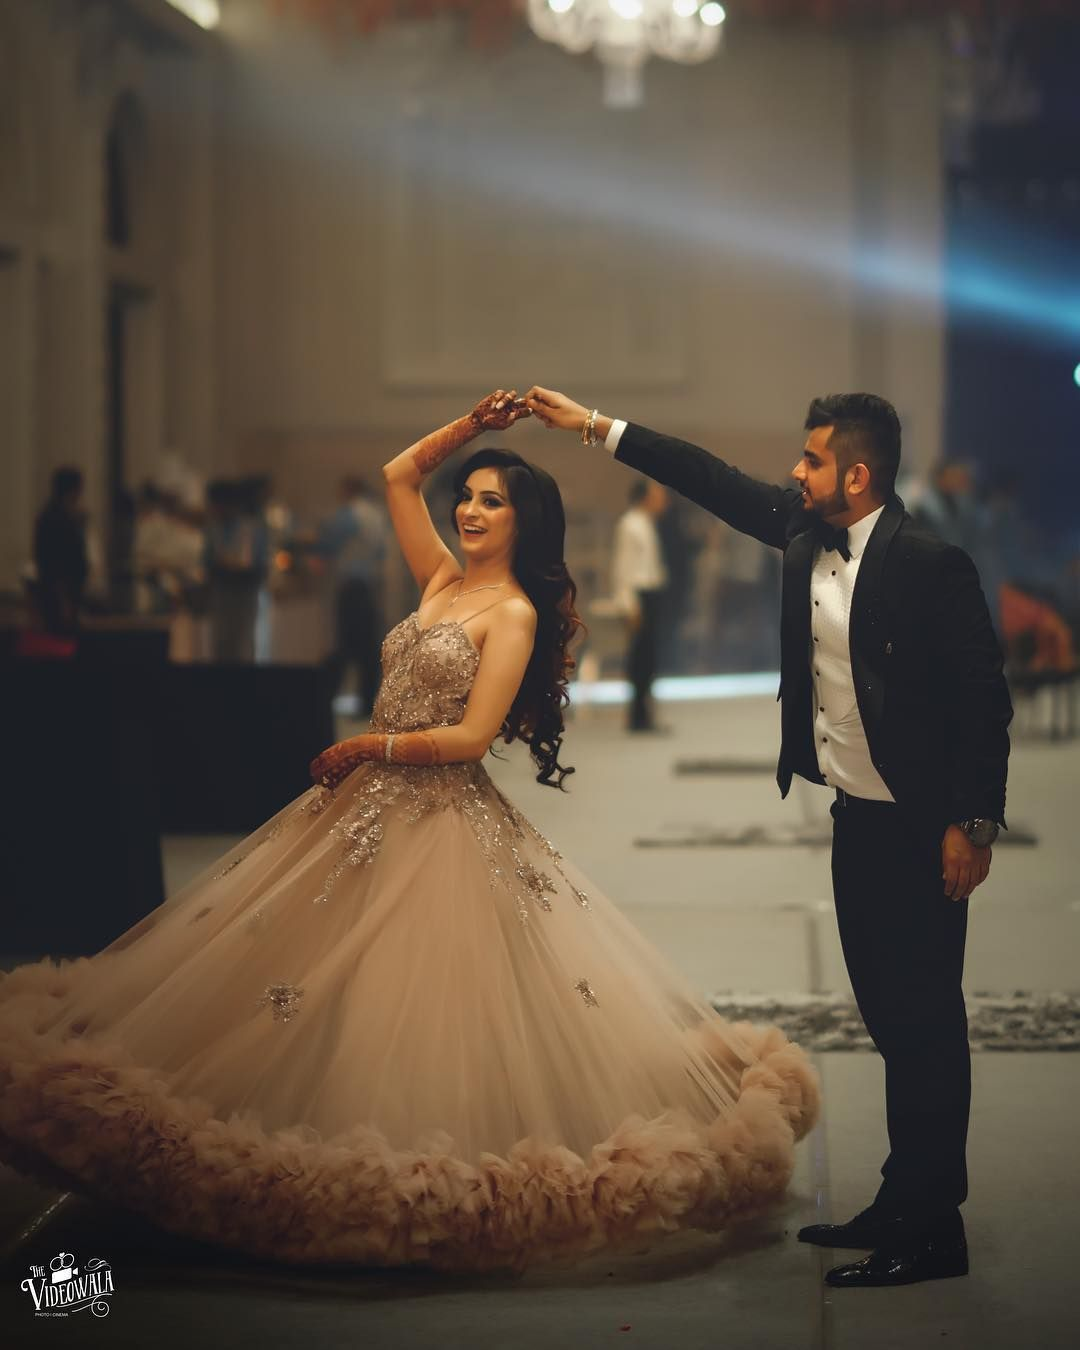 List Of 25 Best Romantic Couple Dance Video Songs Engagement Gowns Bridal Outfits Wedding Outfit